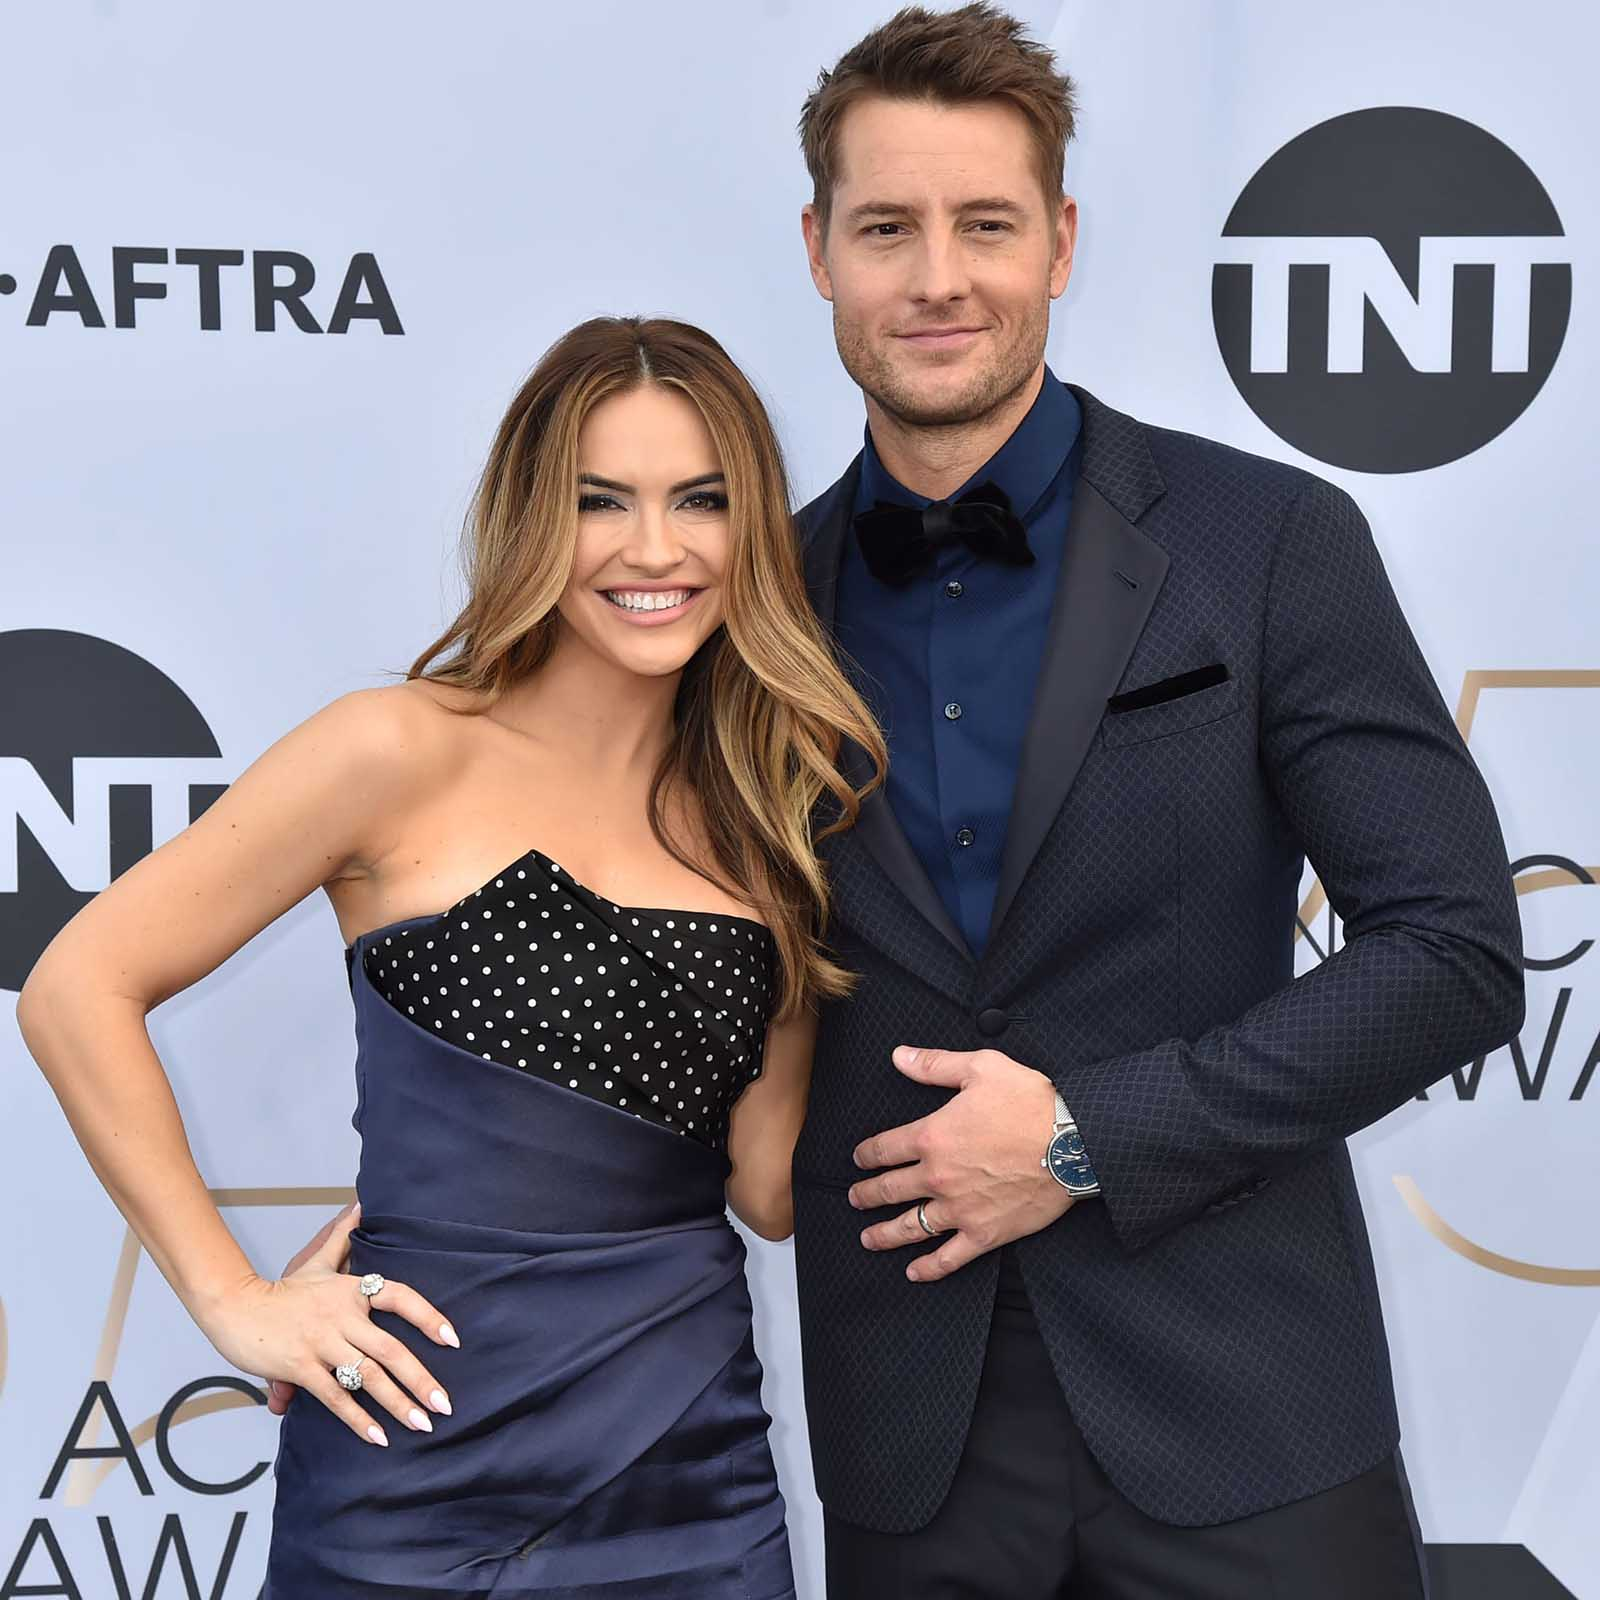 'Selling Sunset's Chrishell Stause and 'This is Us''s Justin Hartley separated back in November 2019. But the divorce drama is alive and well.